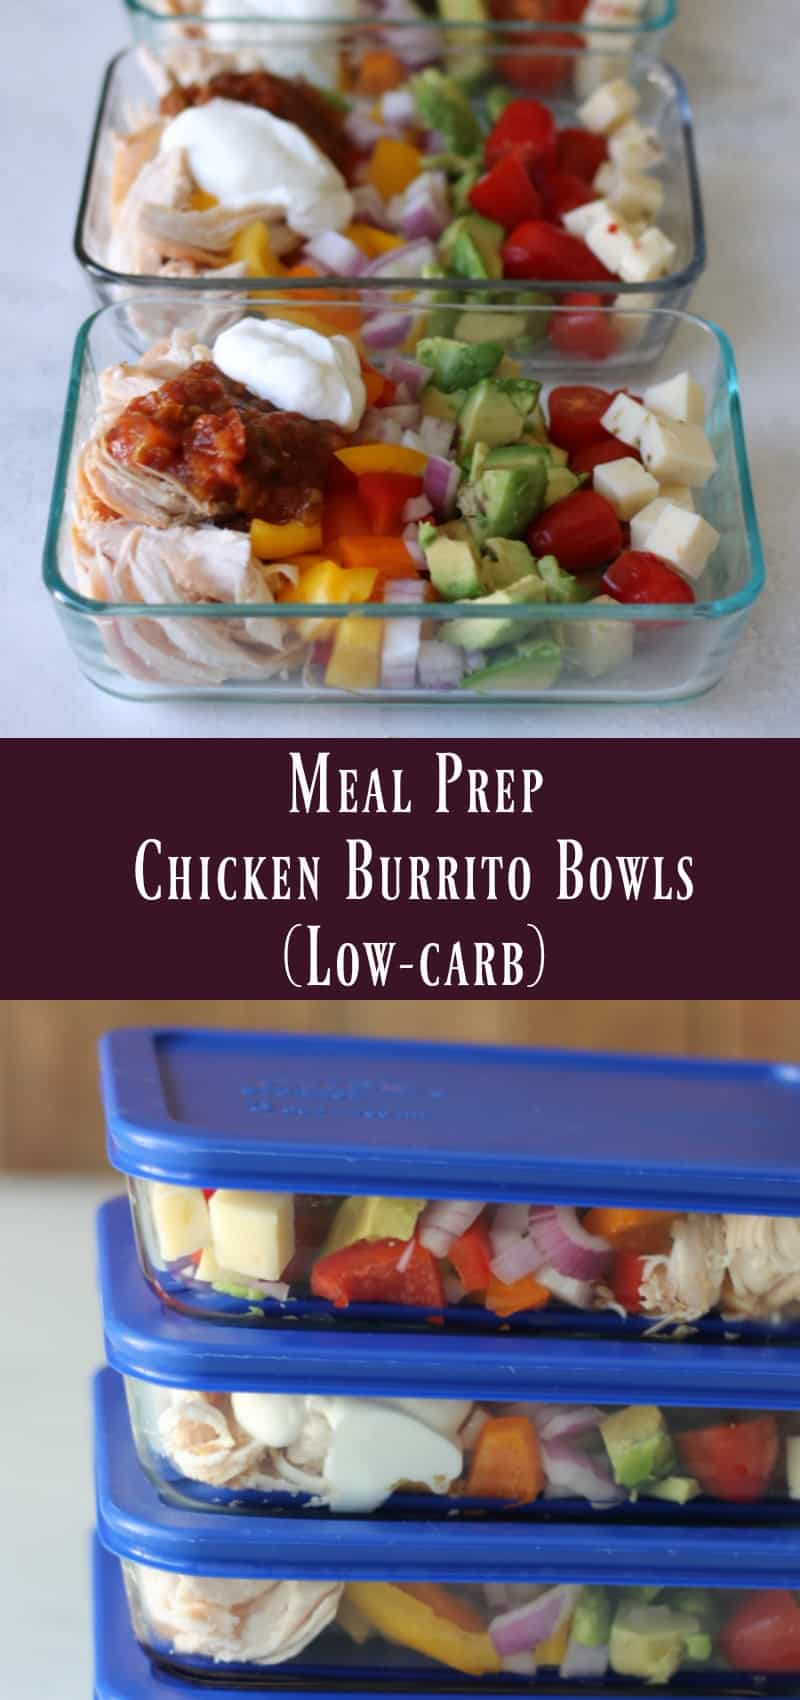 chicken burrito bowl: low-carb meal prep recipe - organize yourself